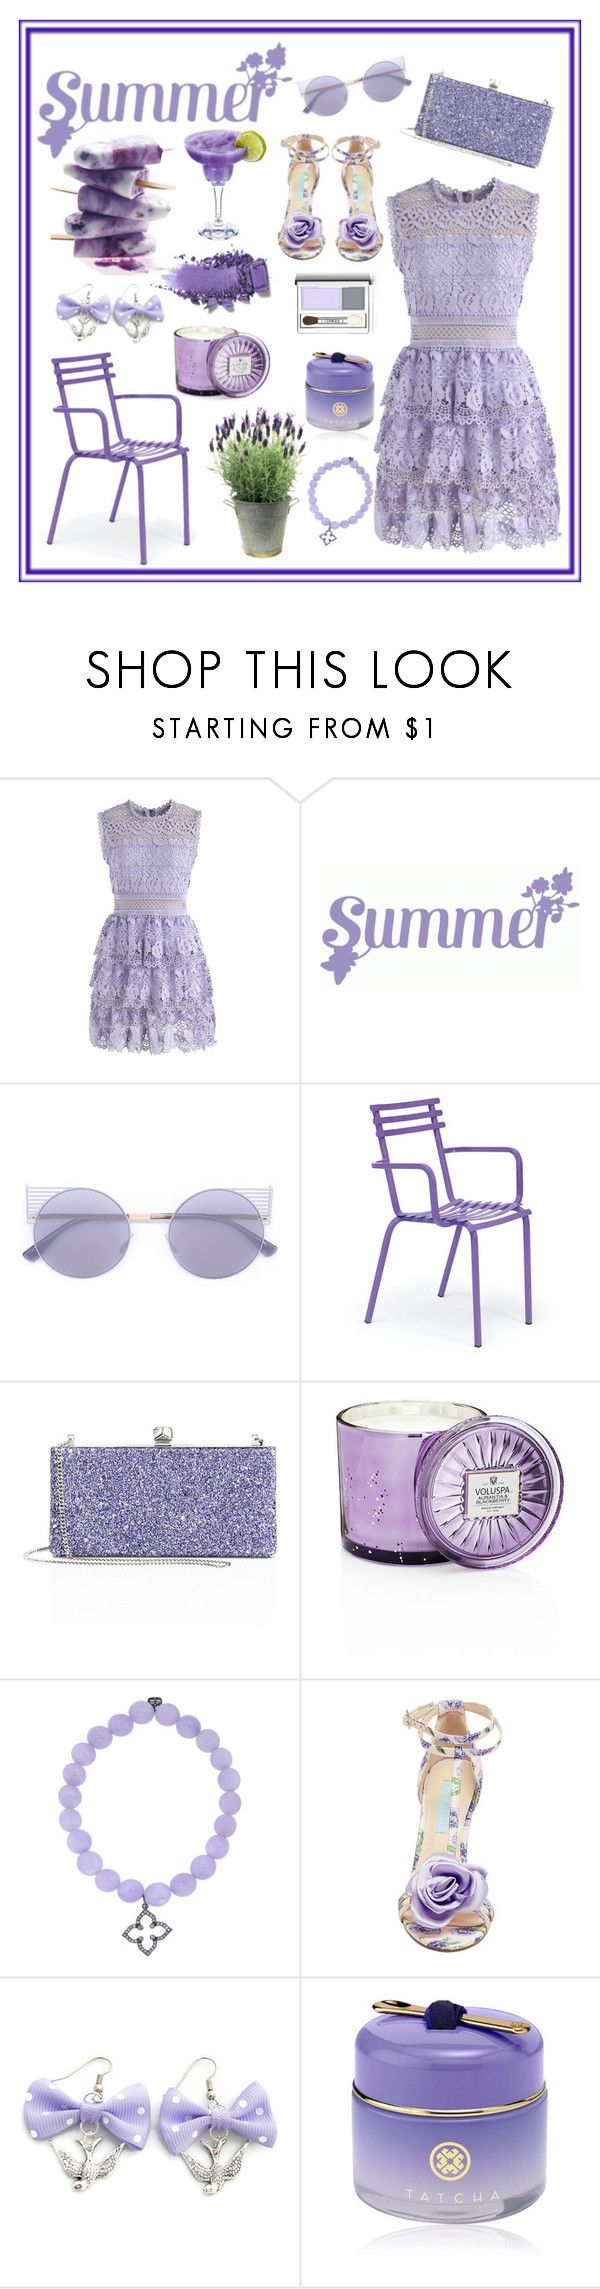 """""""Lilac Summer"""" by miss-shan-nicole ❤ liked on Polyvore featuring Chicwish, Mykita, Ethimo, Jimmy Choo, Voluspa, Sydney Evan, Betsey Johnson, Tatcha and Clinique"""